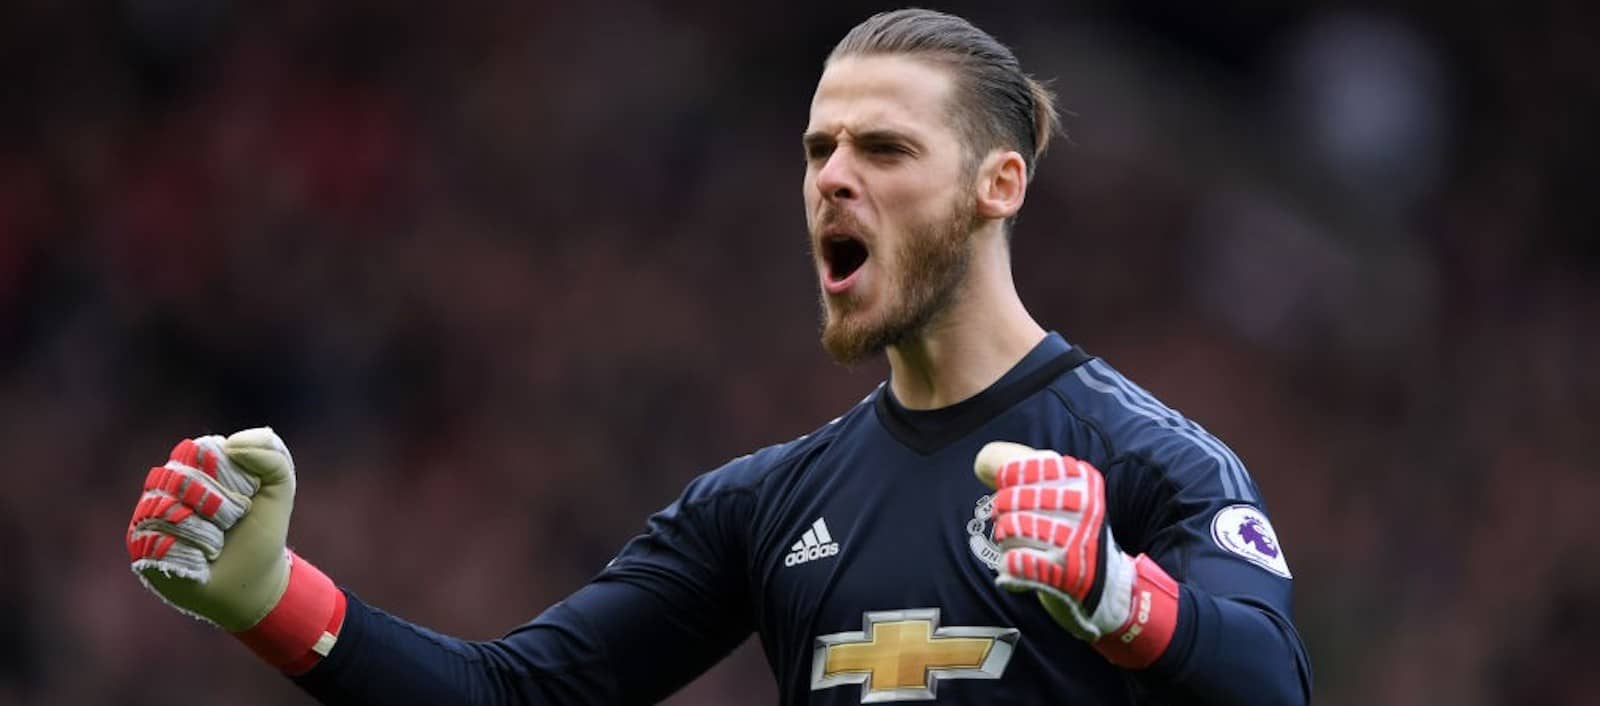 PSG interested in mega swoop for Manchester United's David de Gea: report